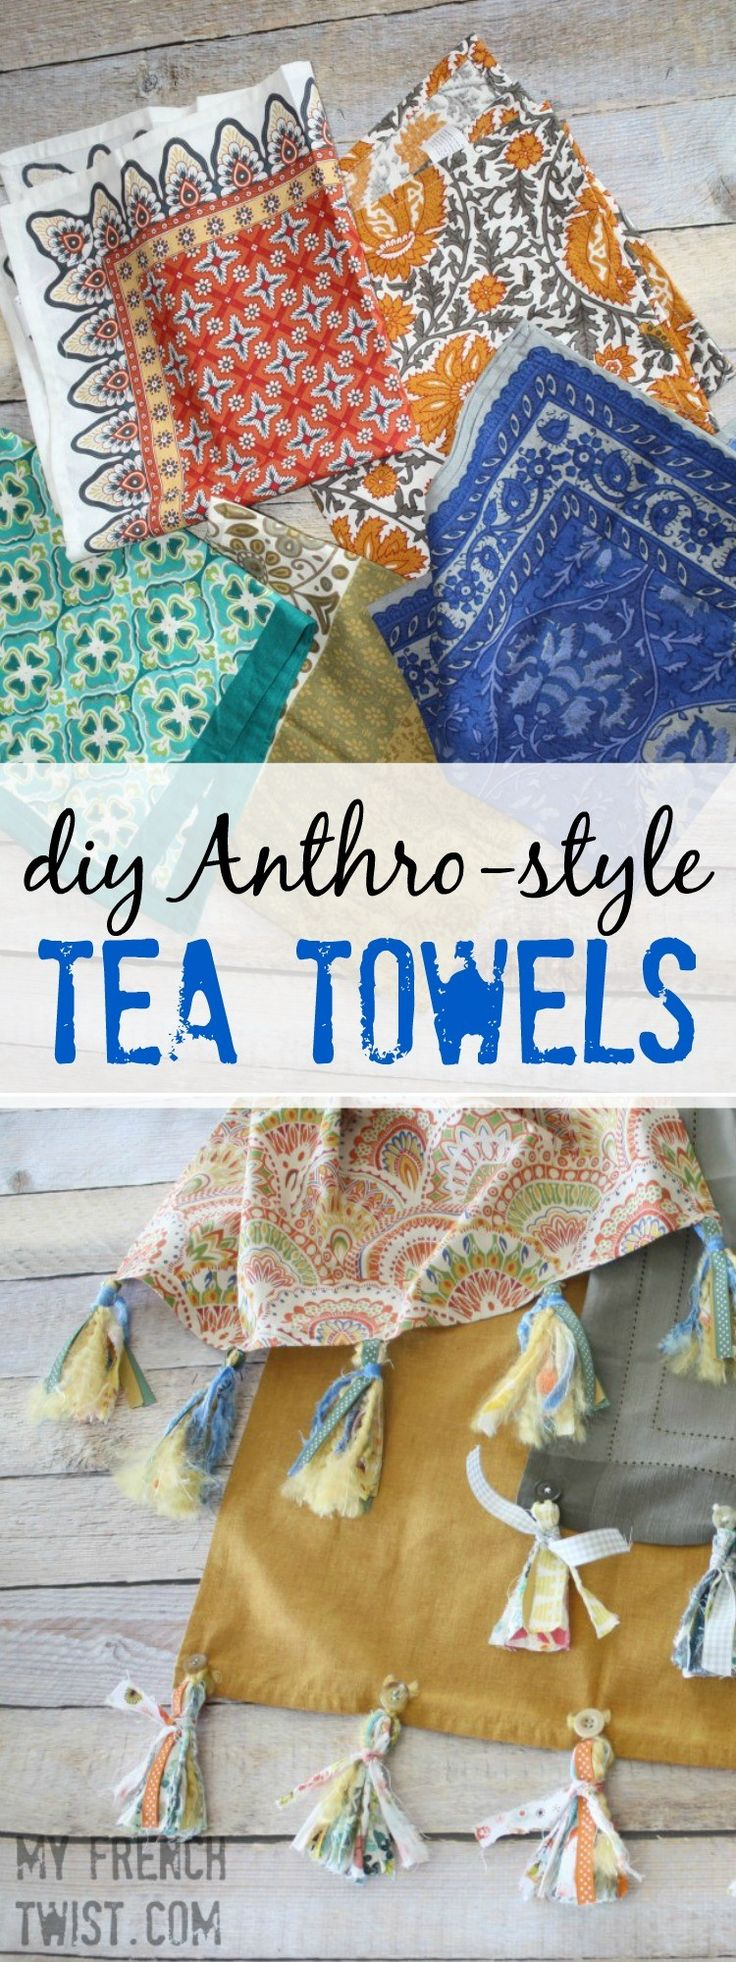 Sweetest little anthro hack ever! Tea towels http://www.myfrenchtwist.com/made-anthro-hack-tea-towels/